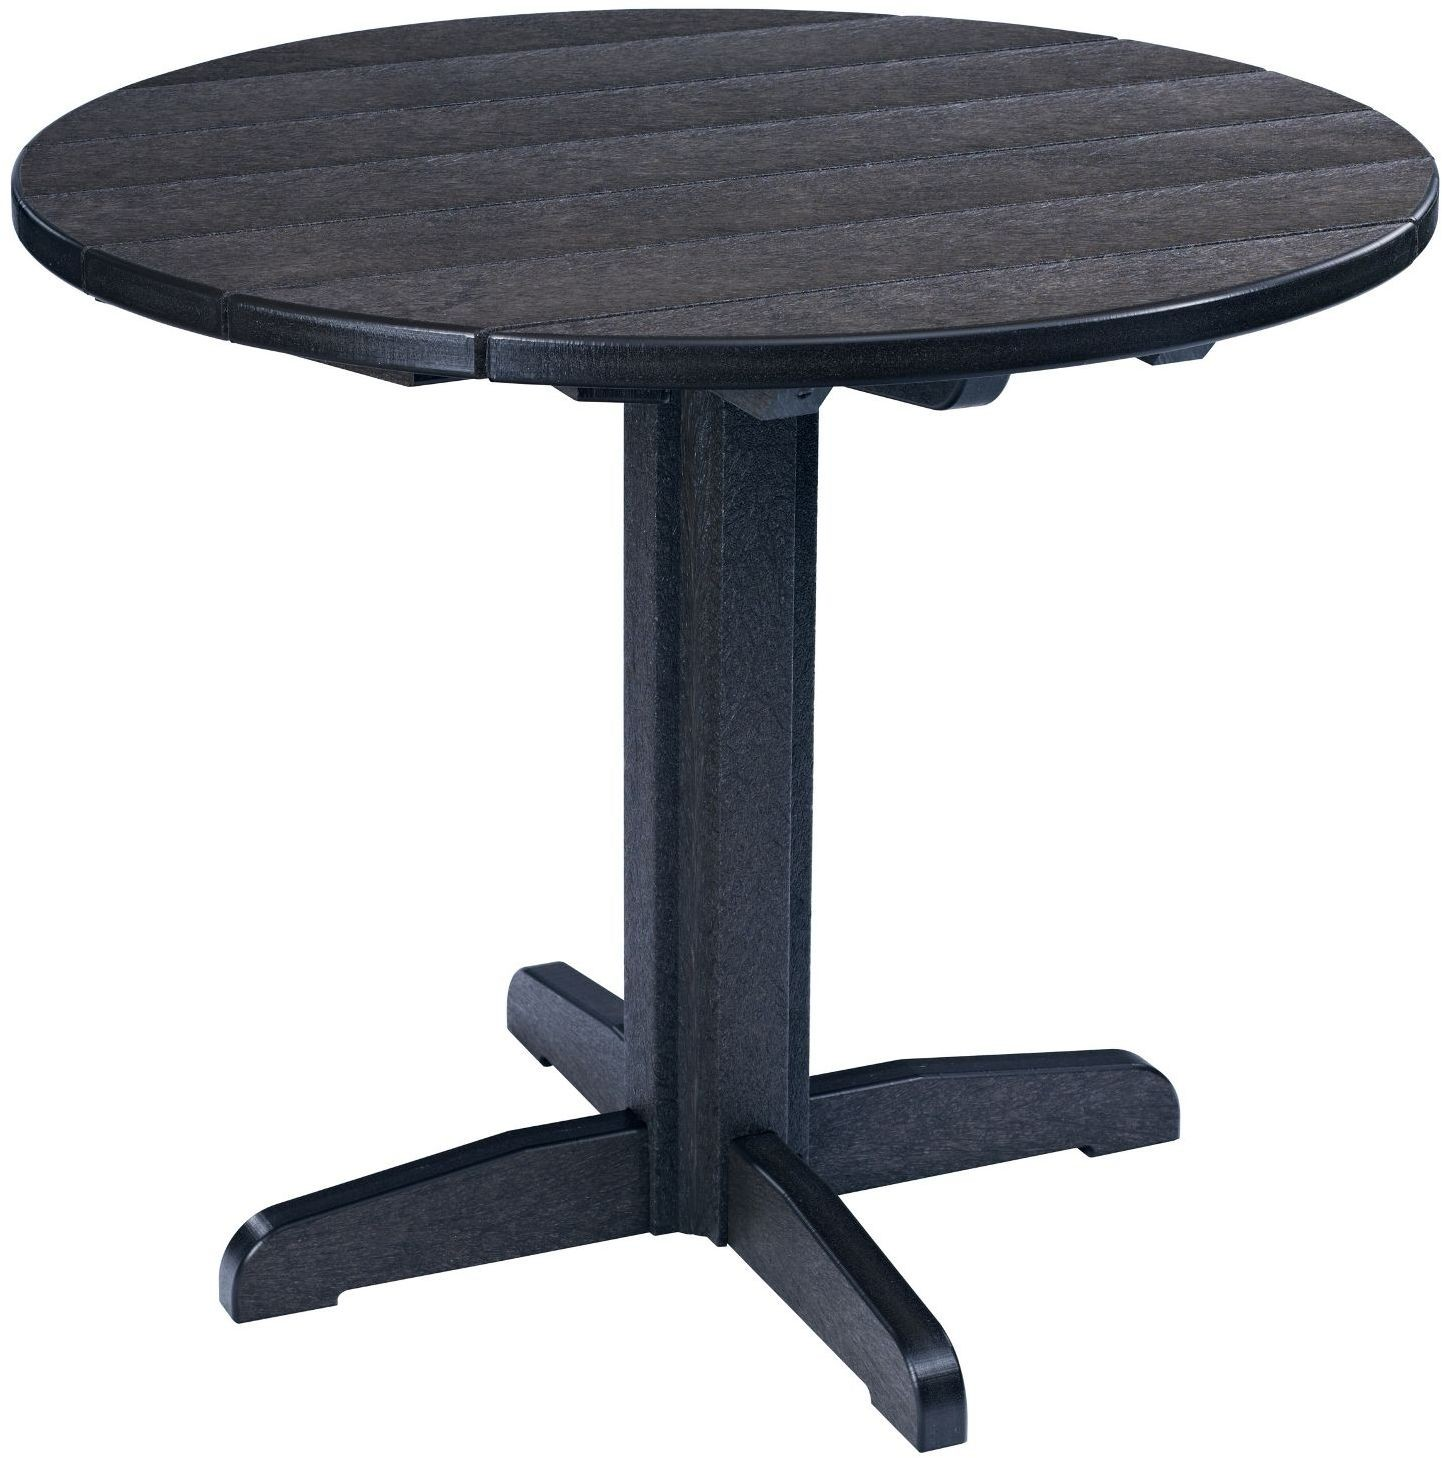 Generations Black 37 Round Pedestal Dining Table TT02 TB12 12 CR